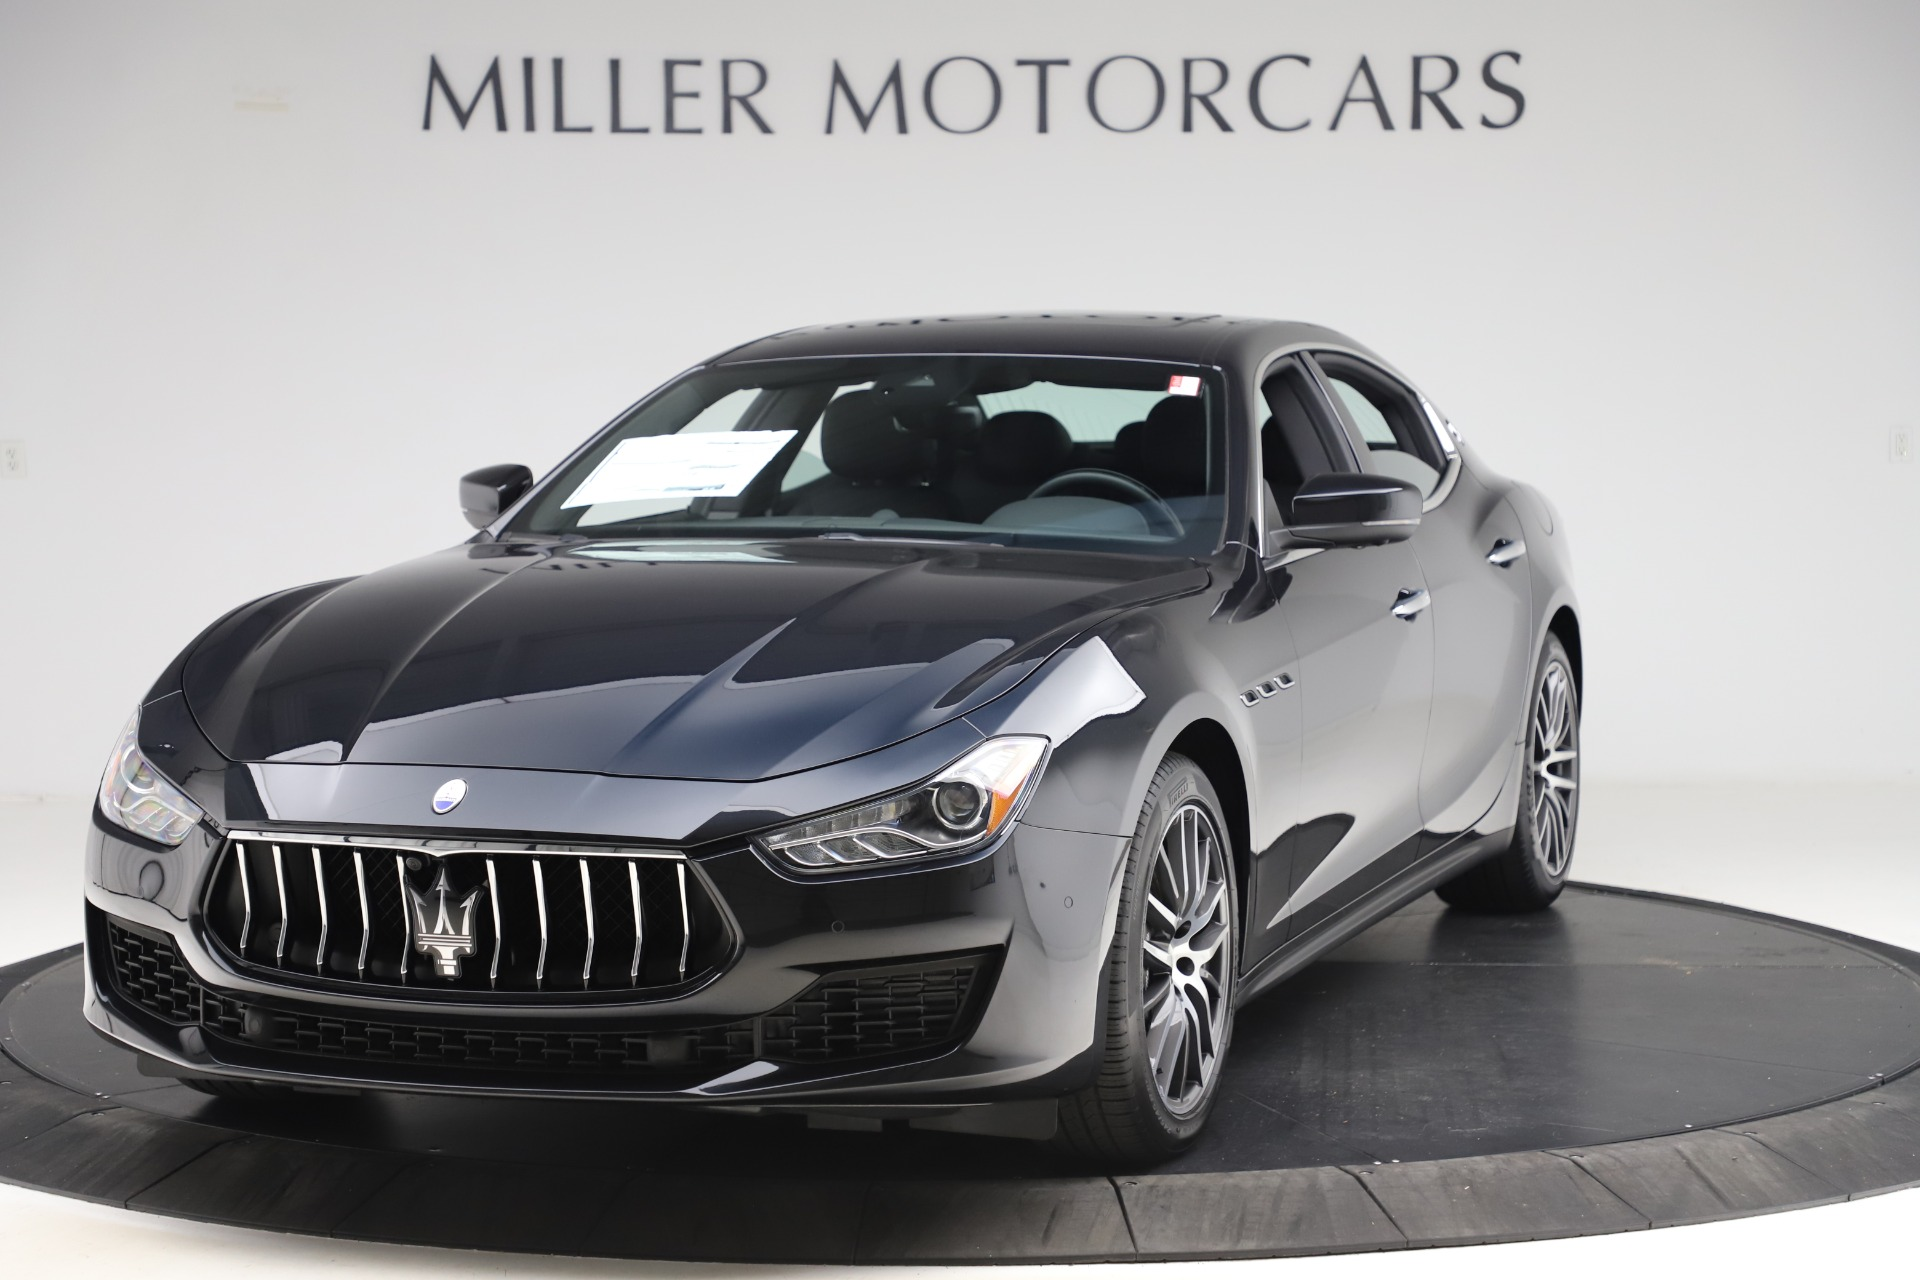 New 2019 Maserati Ghibli S Q4 for sale $91,165 at Maserati of Westport in Westport CT 06880 1